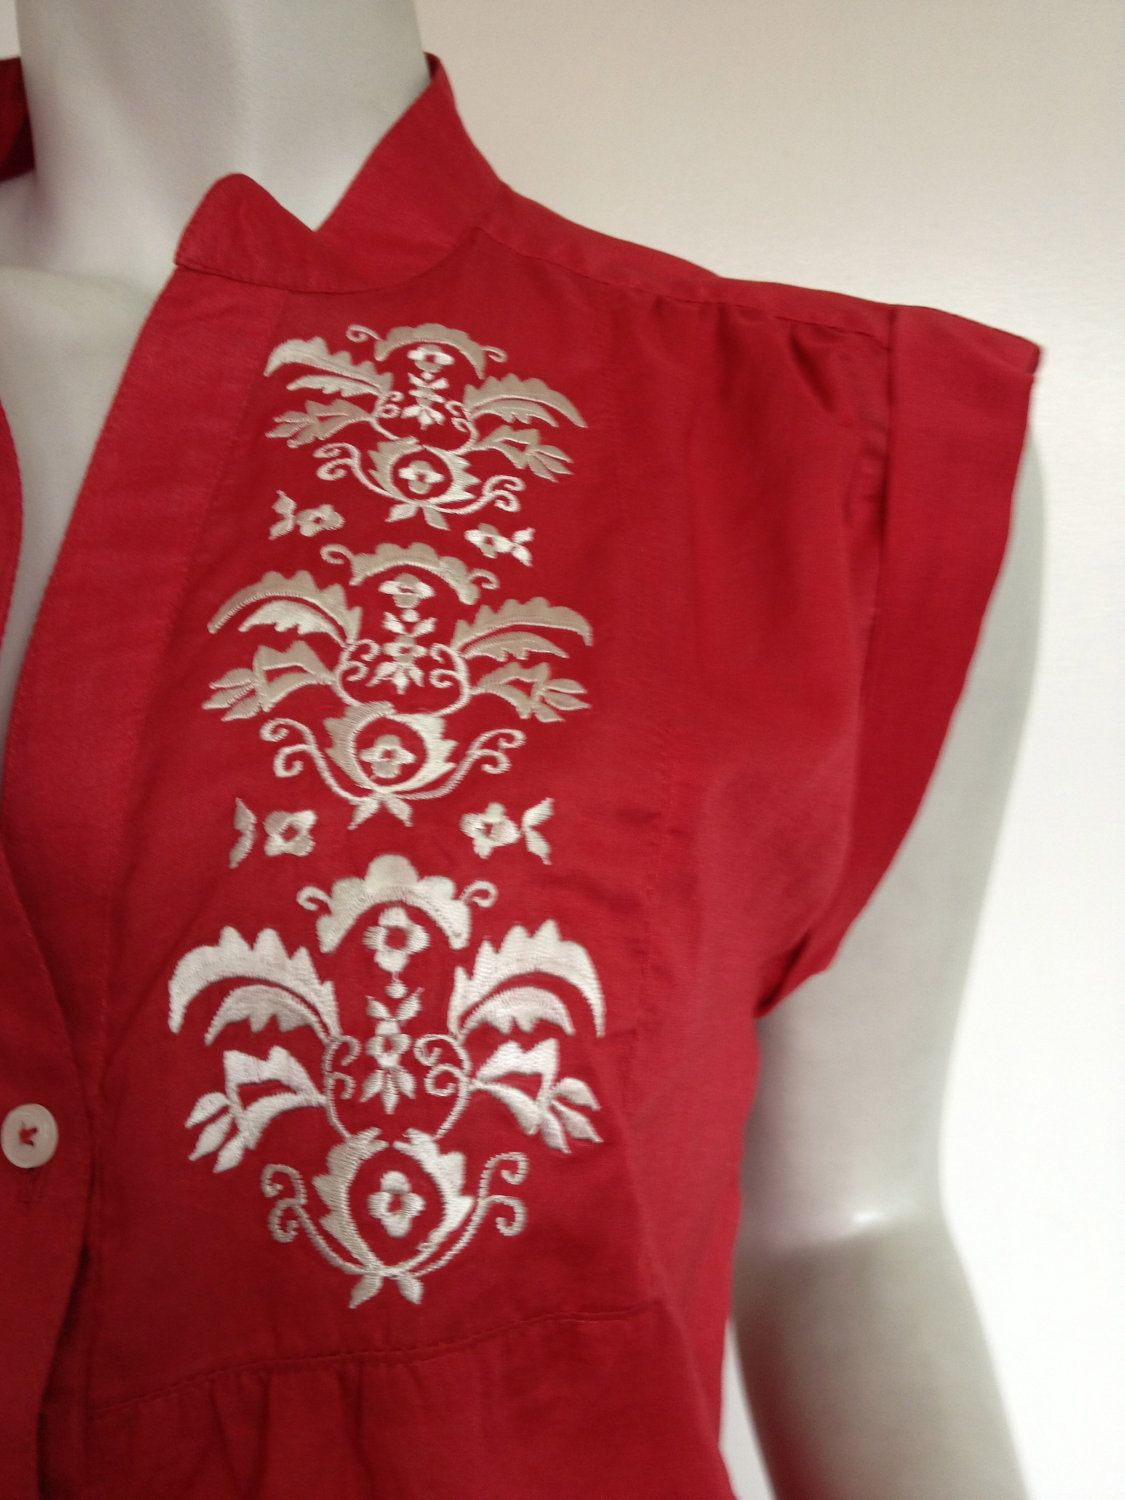 Embroidered Tunic Blouse Top, Boho, Casual, Loose Fit, Red Cotton Voile, Summer, Resort, Holiday. $46.00, via Etsy.